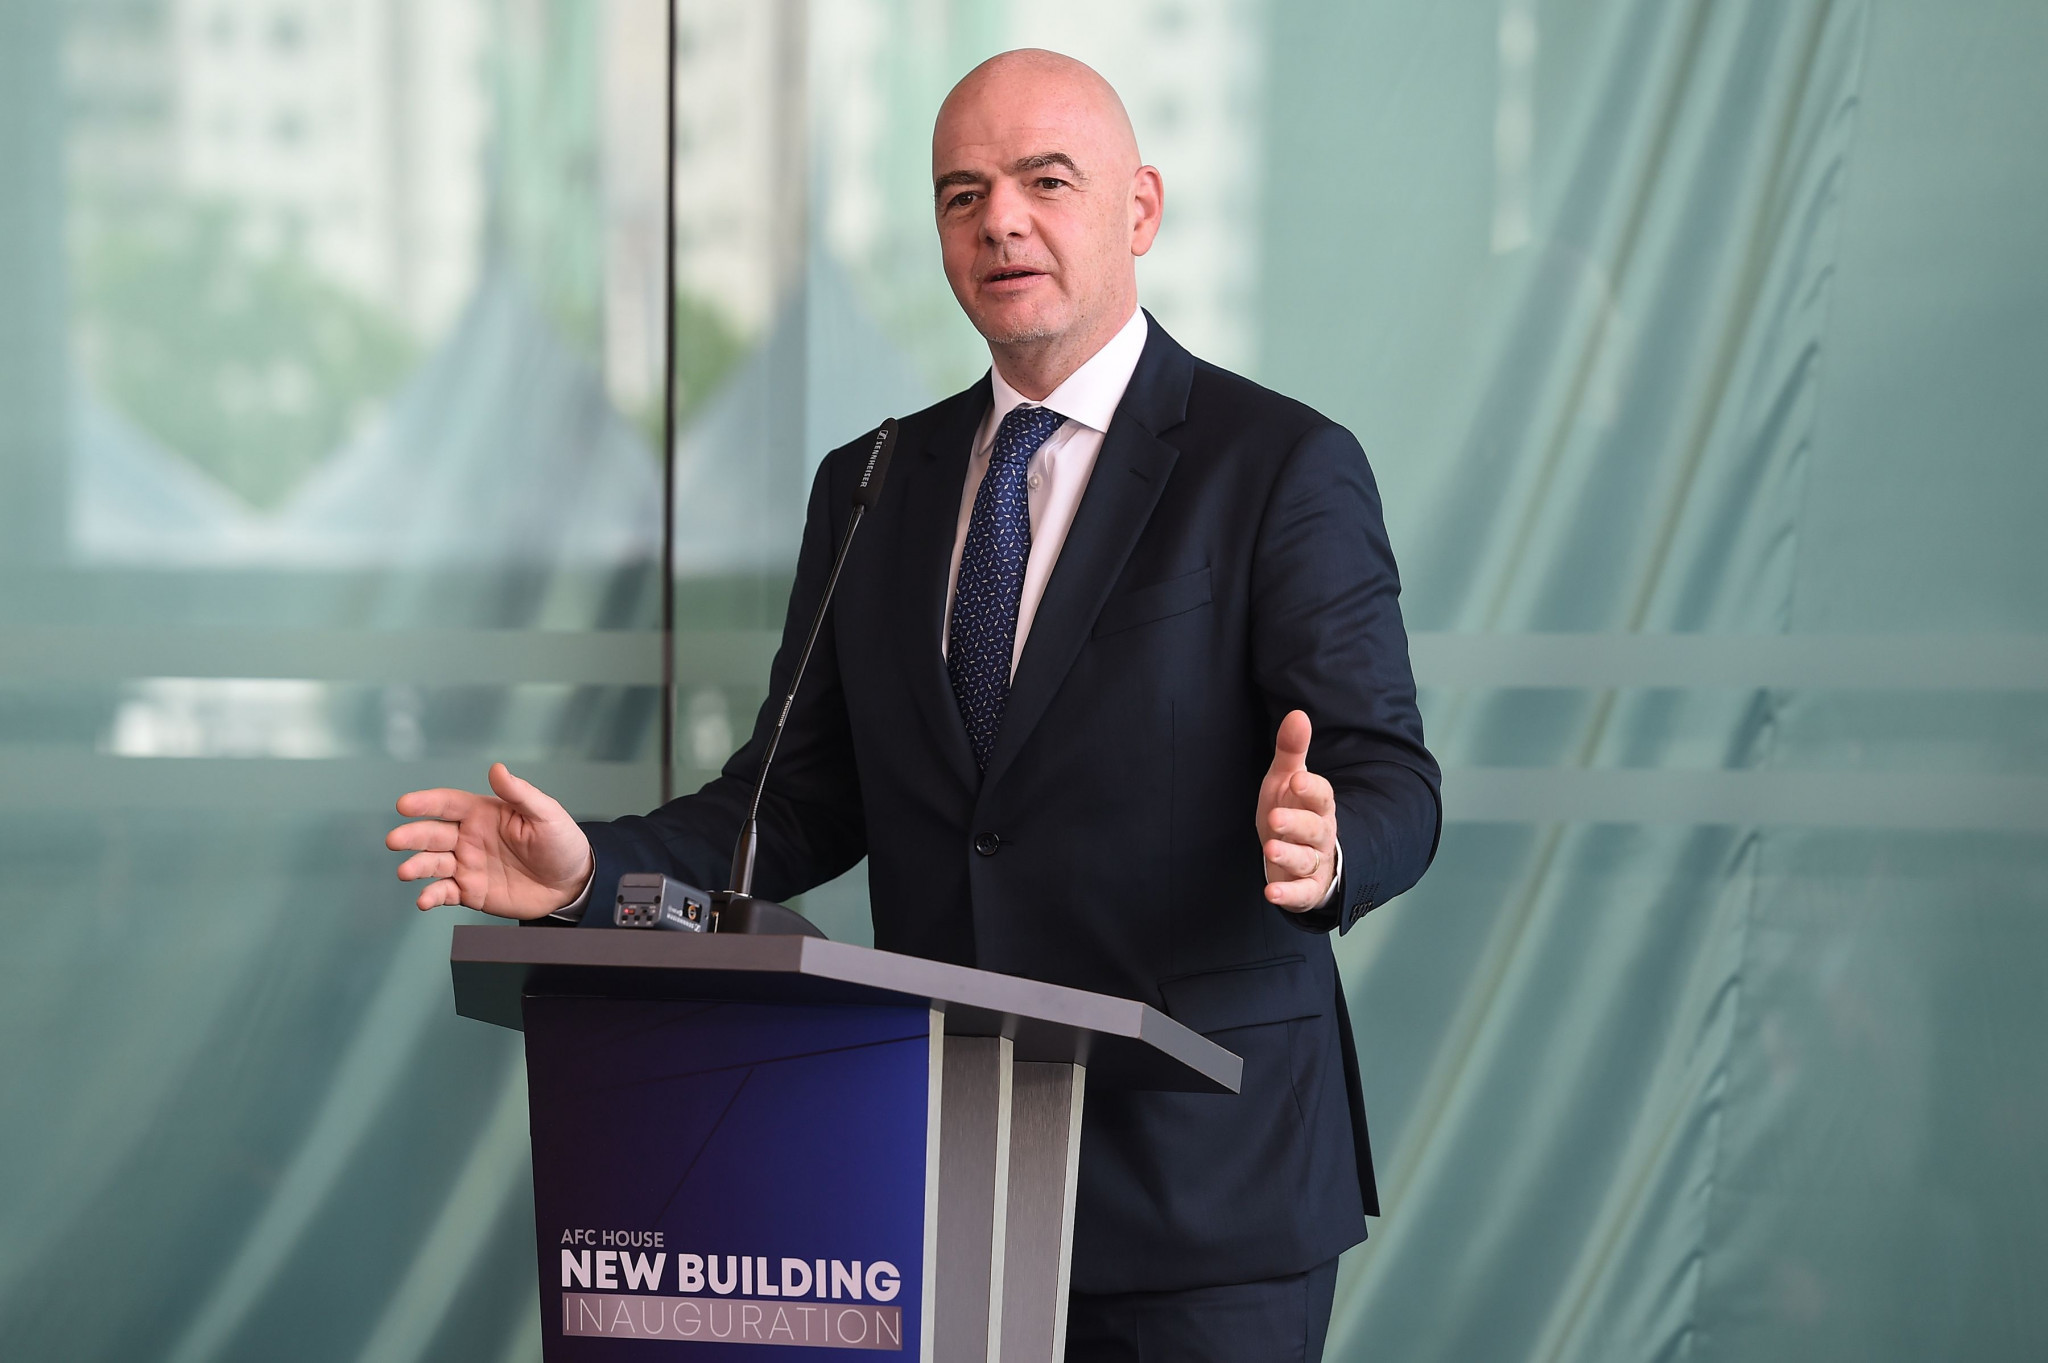 Exchanges involving FIFA President Gianni Infantino could be among those published by the media ©Getty Images